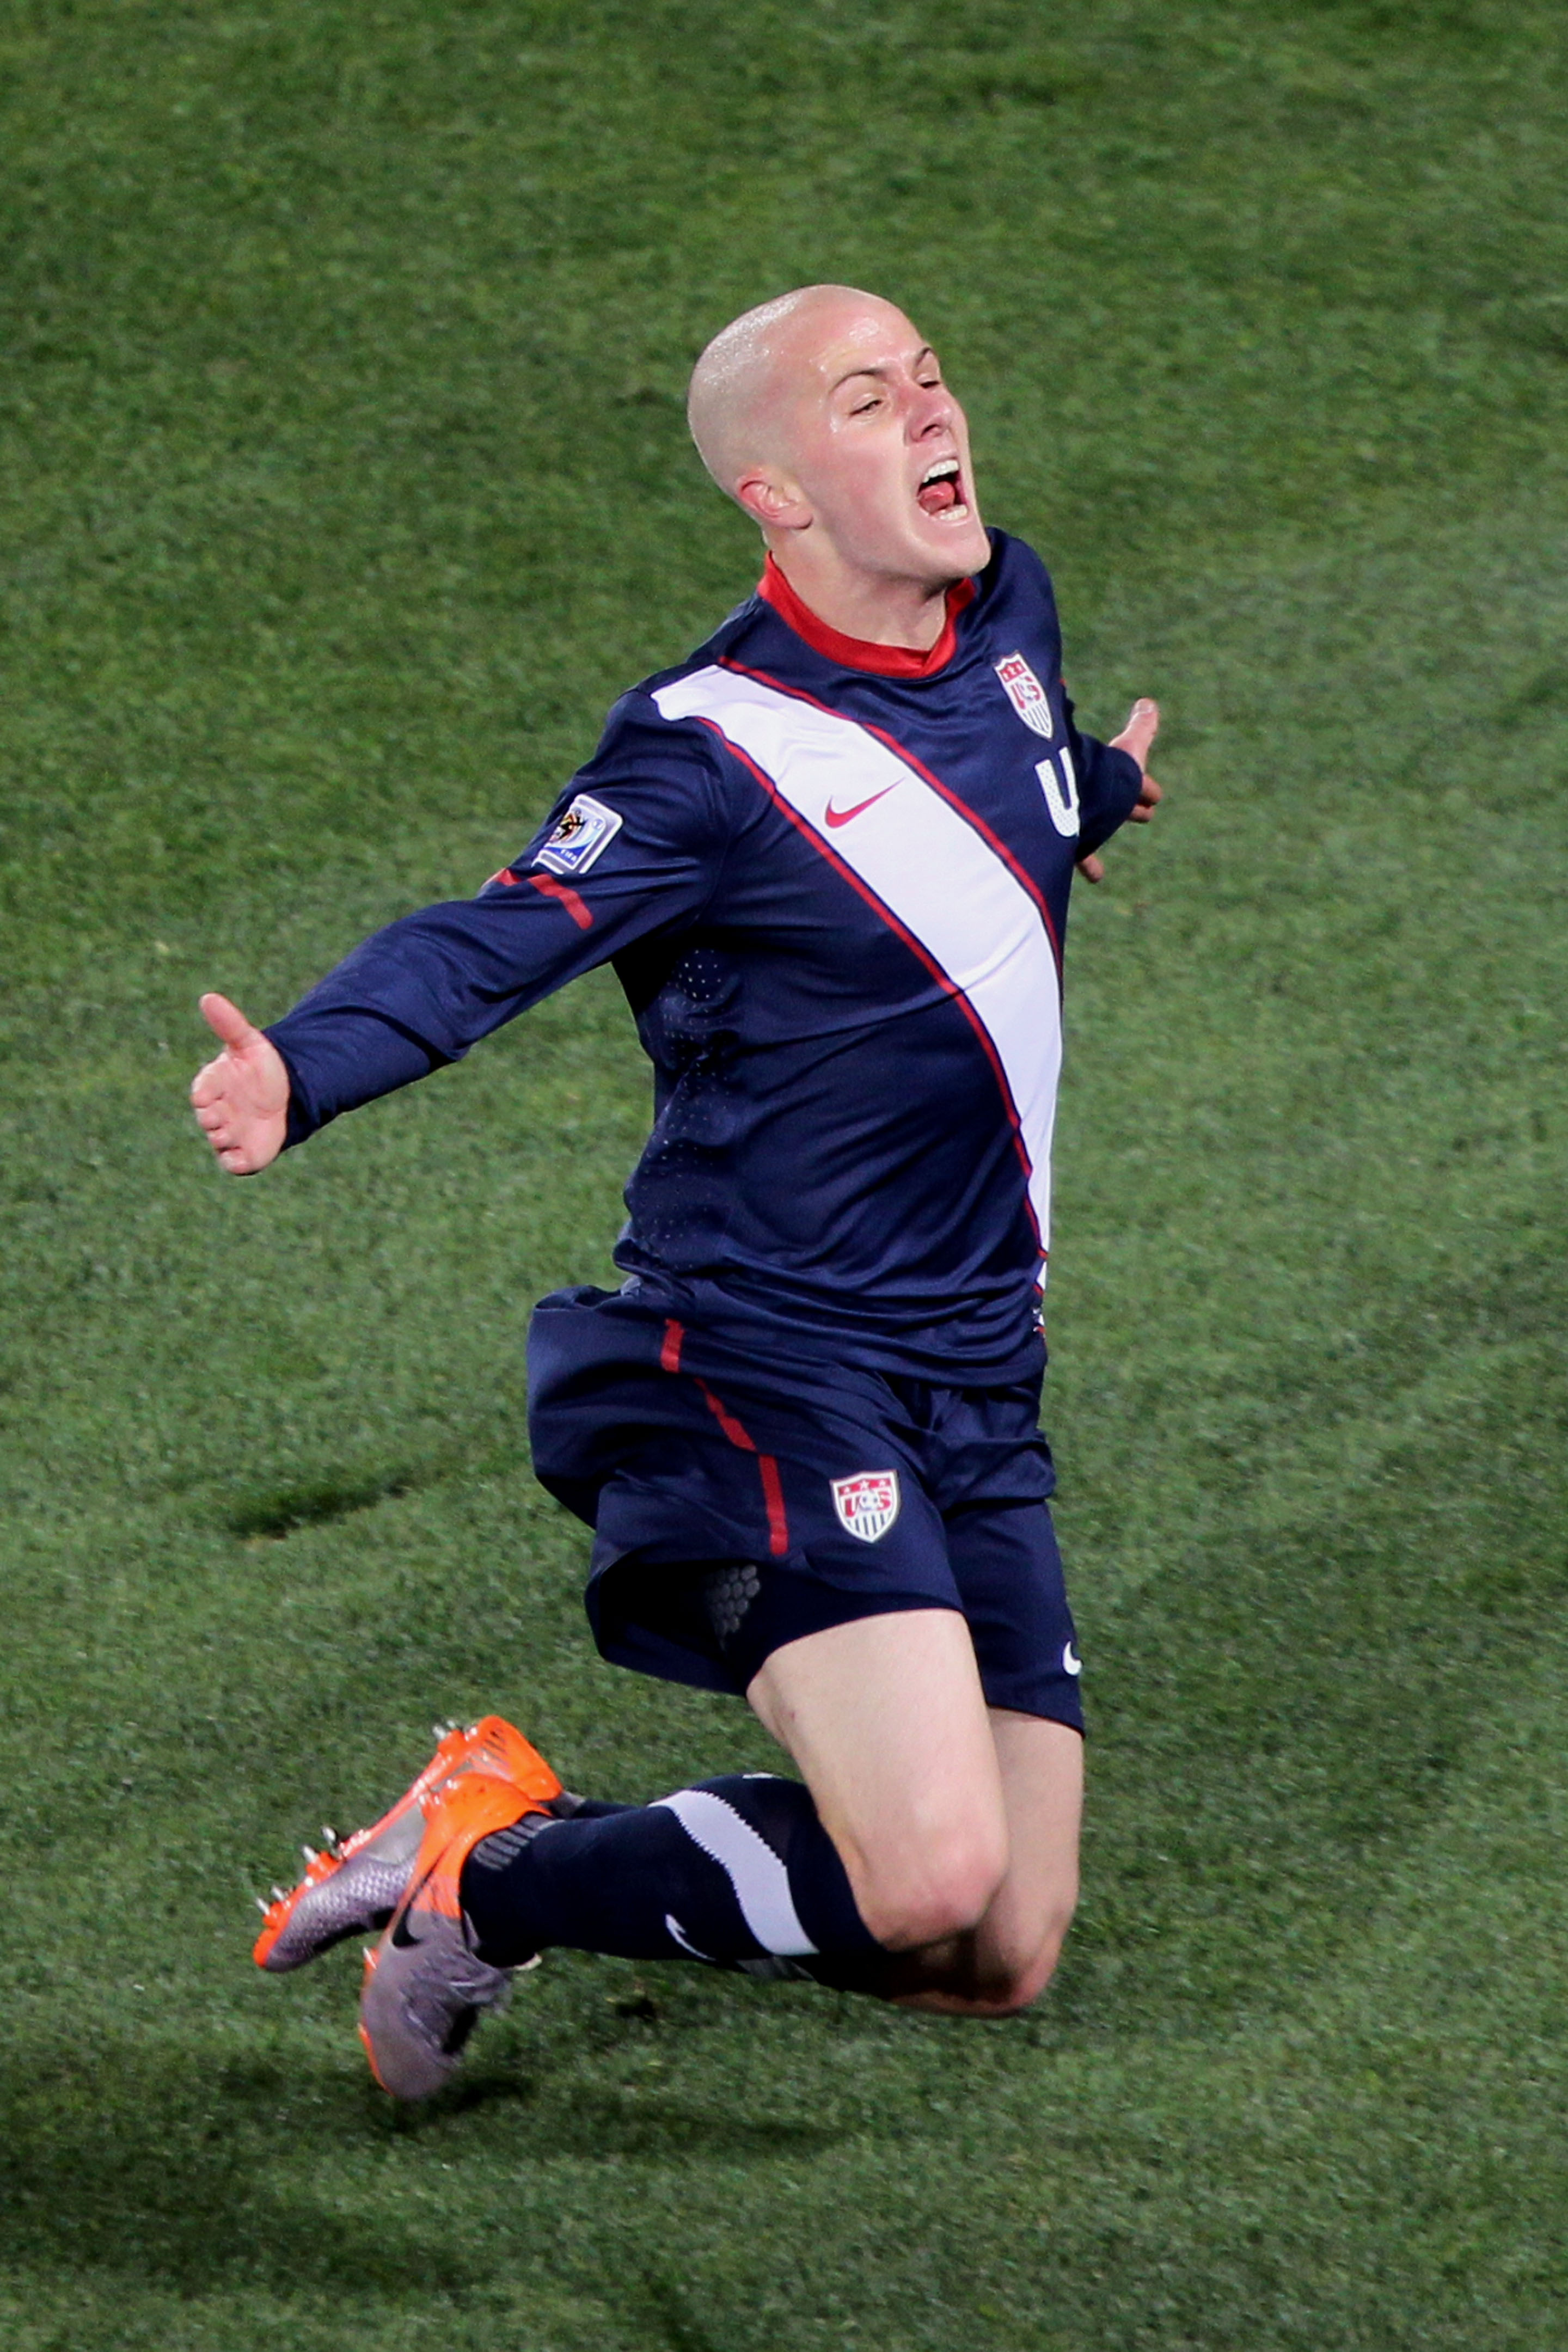 JOHANNESBURG, SOUTH AFRICA - JUNE 18:  Michael Bradley of the United States celebrates scoring his team's second goal during the 2010 FIFA World Cup South Africa Group C match between Slovenia and USA at Ellis Park Stadium on June 18, 2010 in Johannesburg